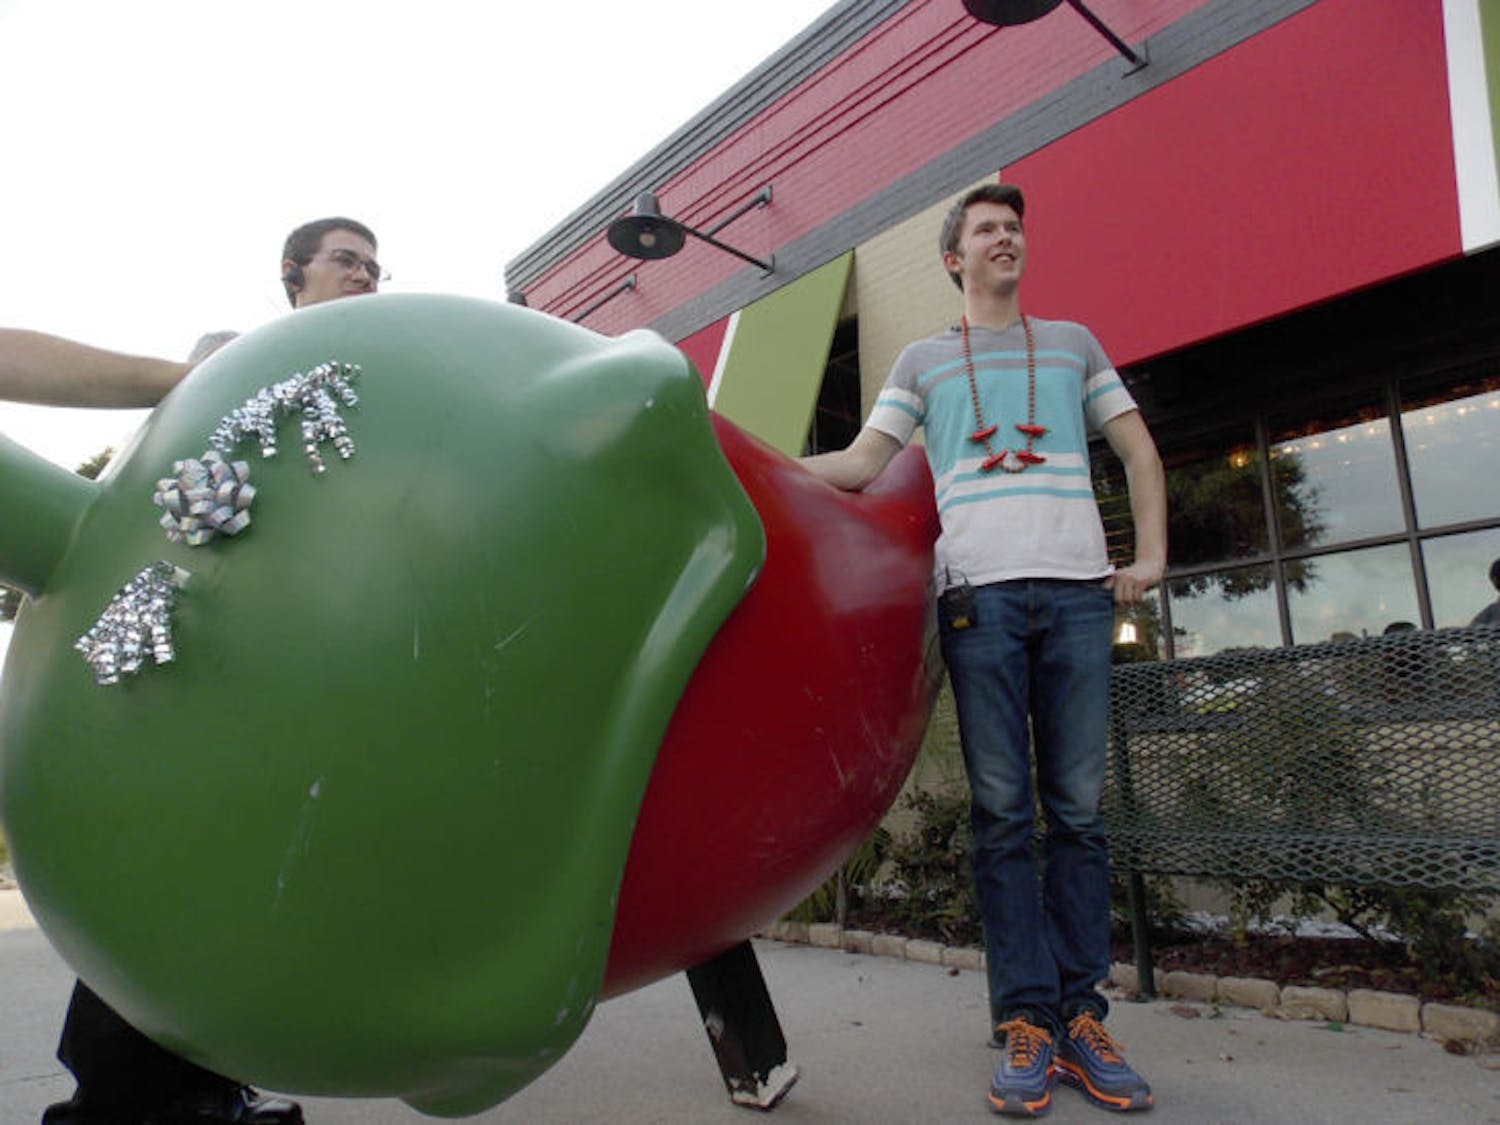 Daniel Helfrich, a 19-year-old UF classics junior, stands in front of his replacement pepper as Chili's representatives watch the occasion. His former chili was stolen.